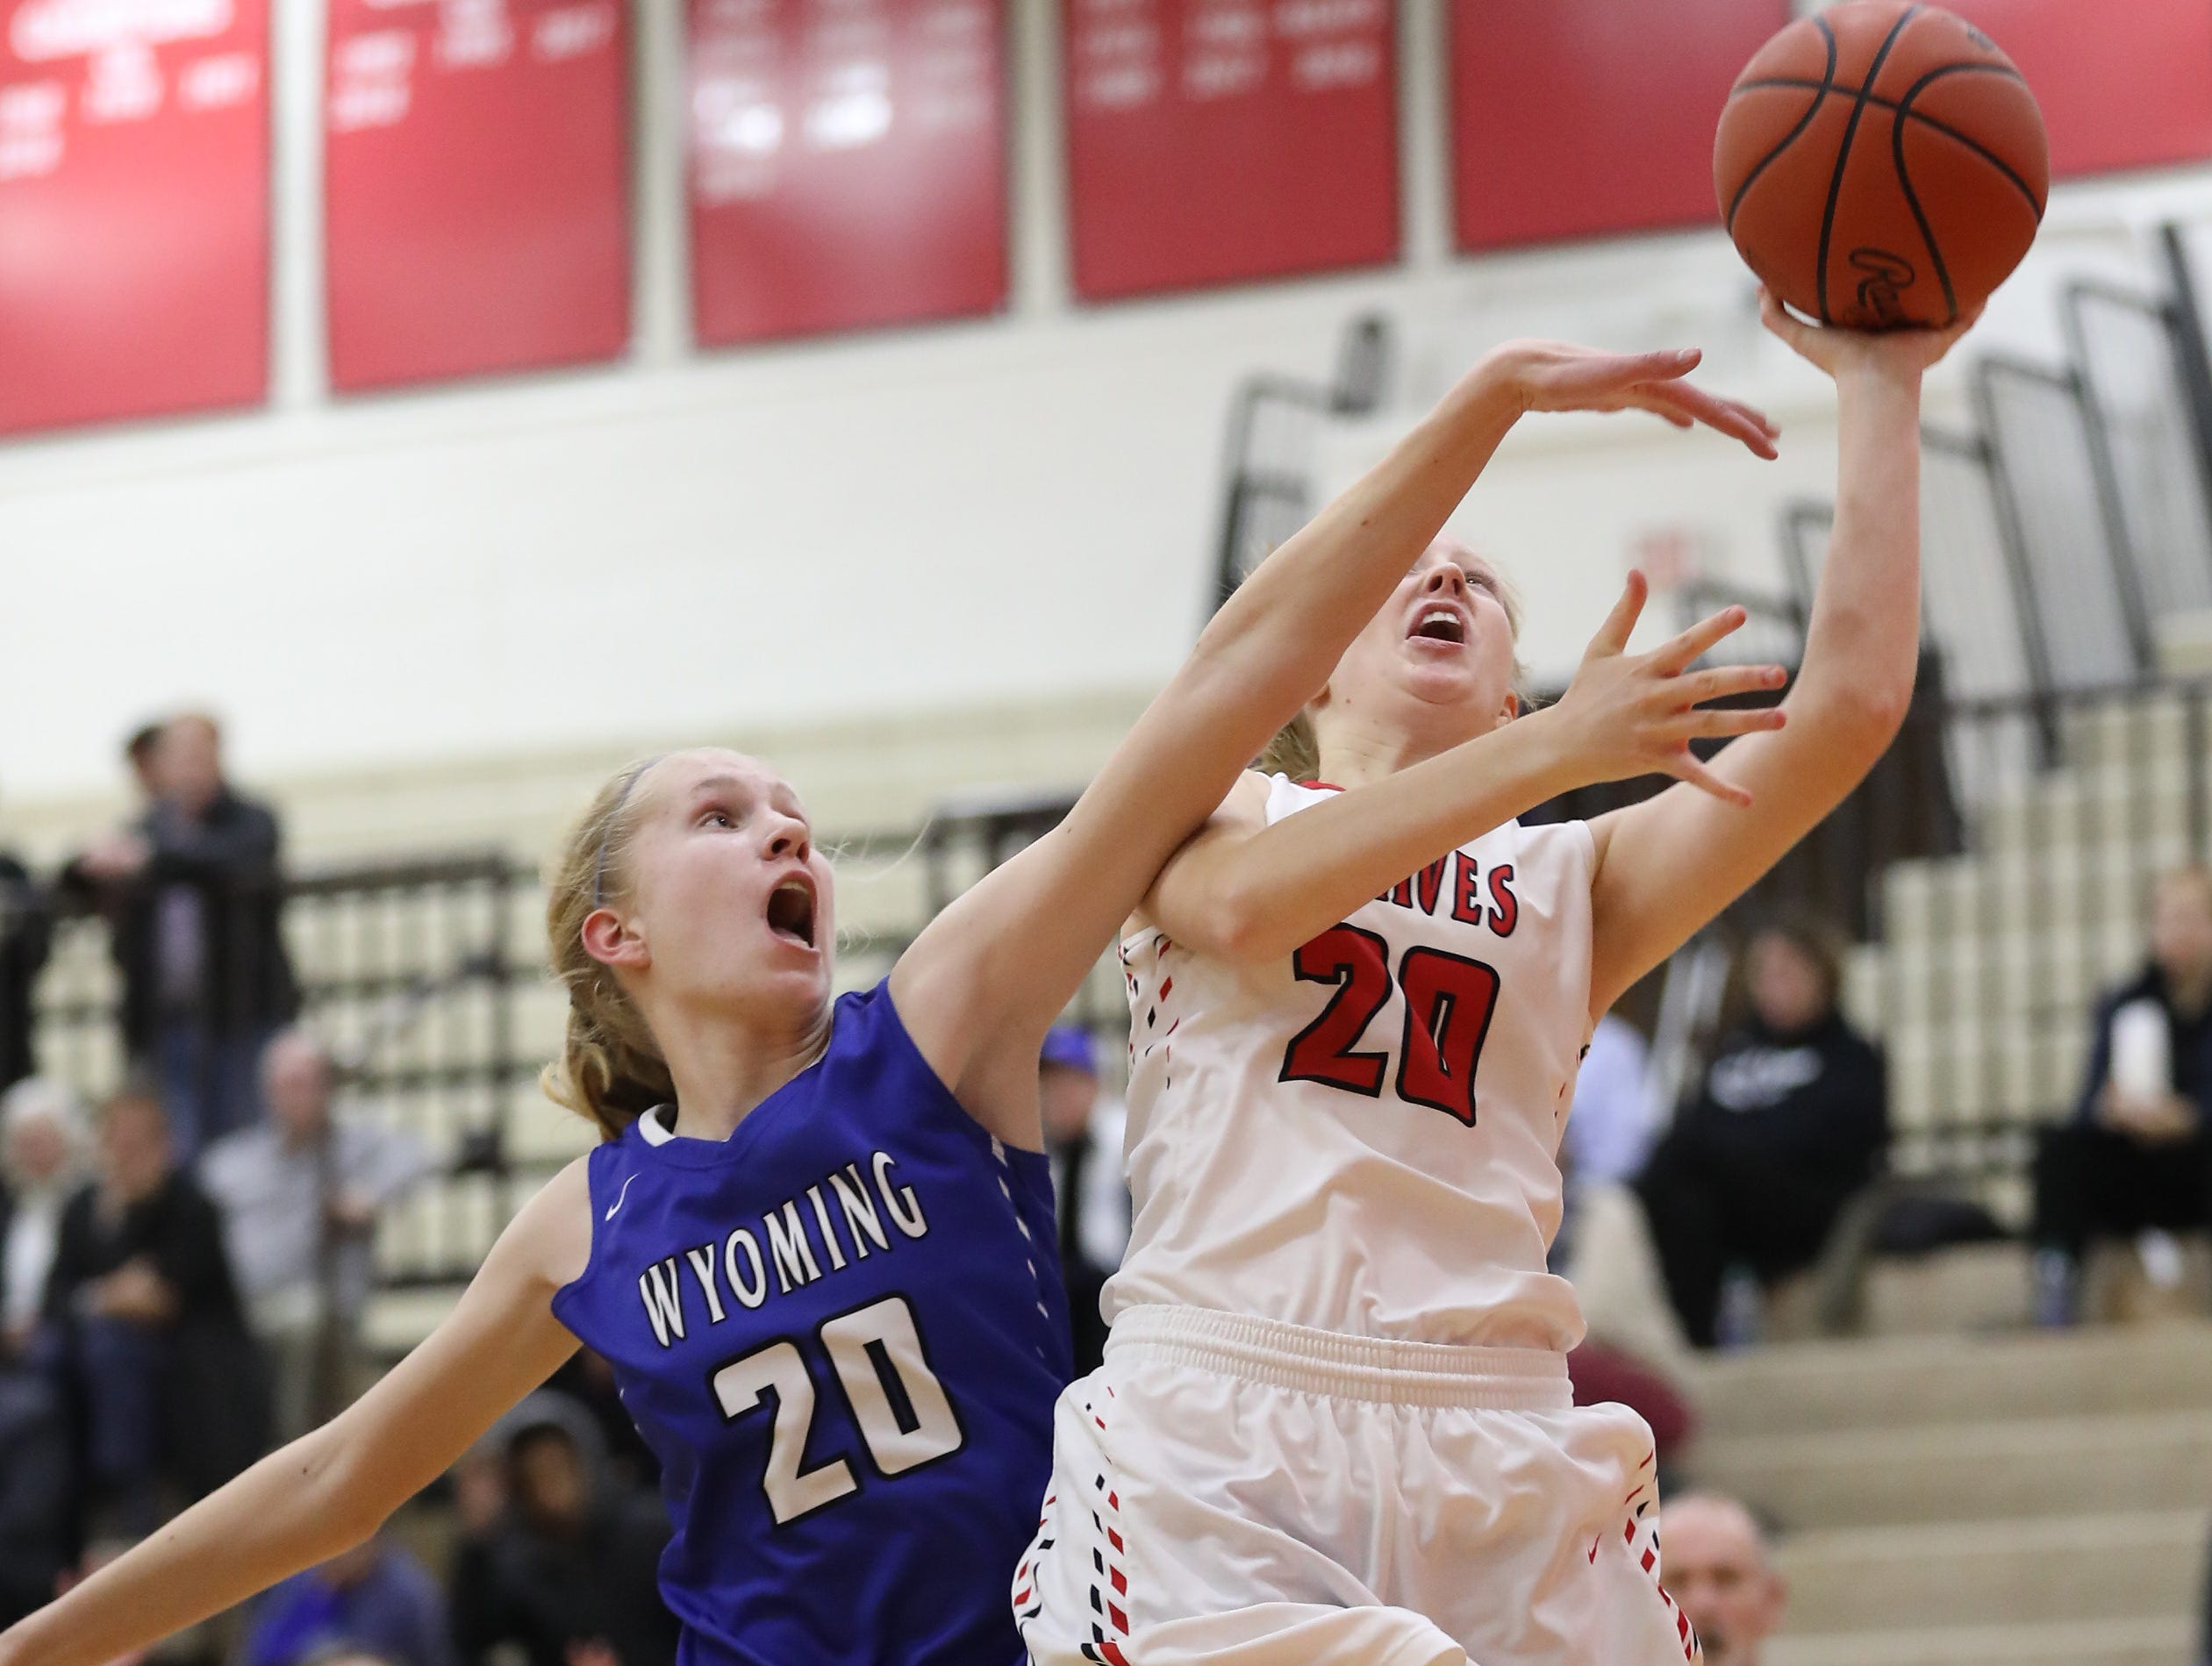 Indian Hill guard  Ella Riggs (22) drives to the basket against Wyoming guard Allison Abplanalp during their basketball game, Thursday, Jan.10,2019.